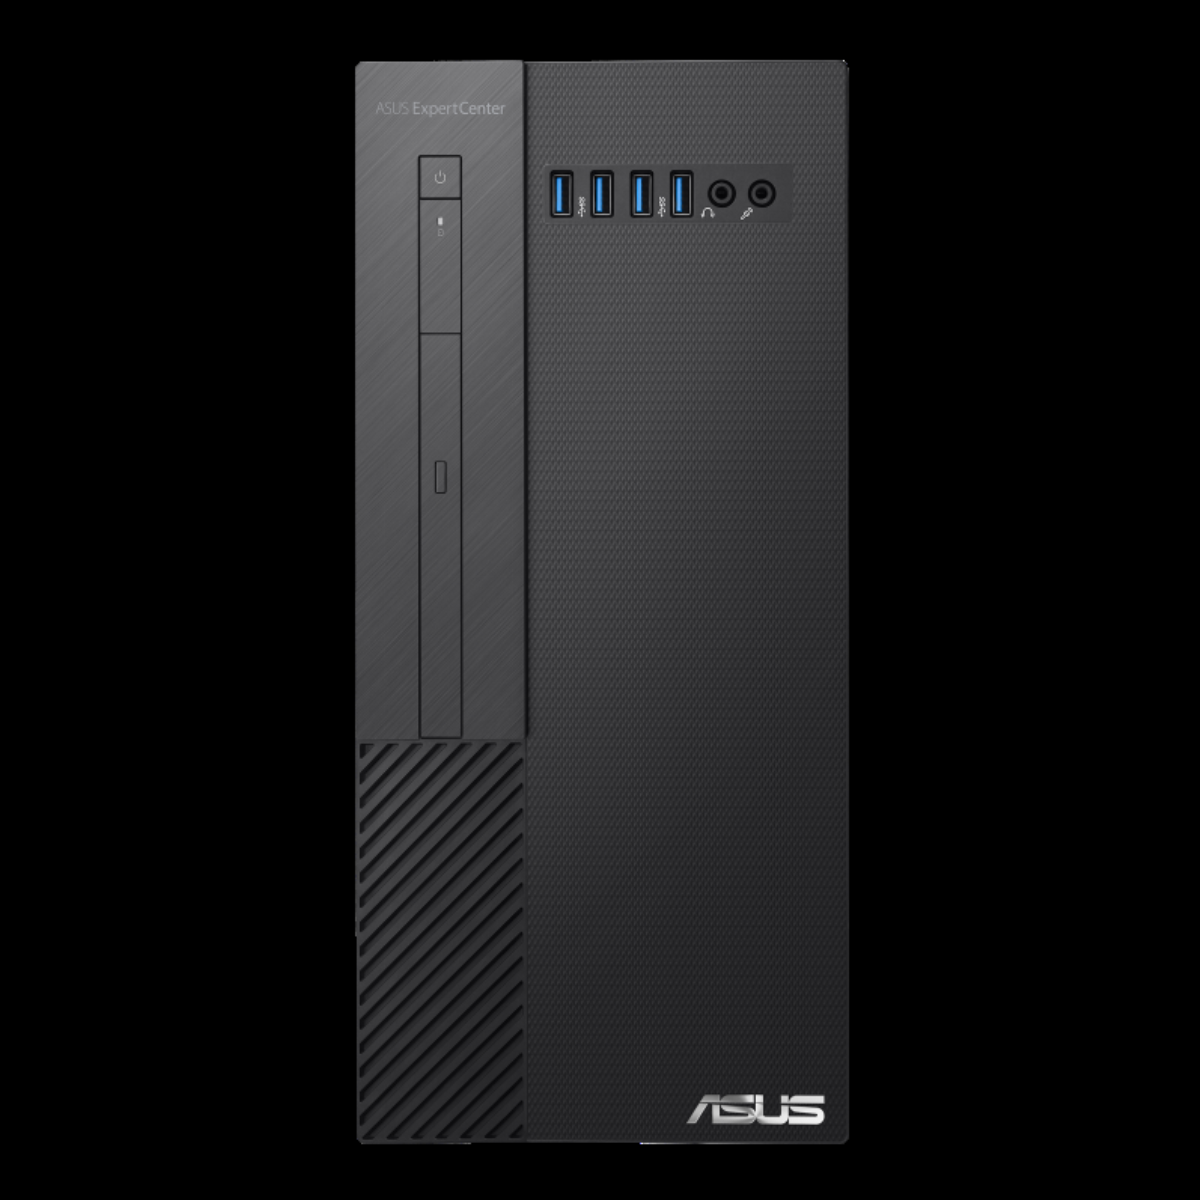 ASUS X500MA-R4300G0080